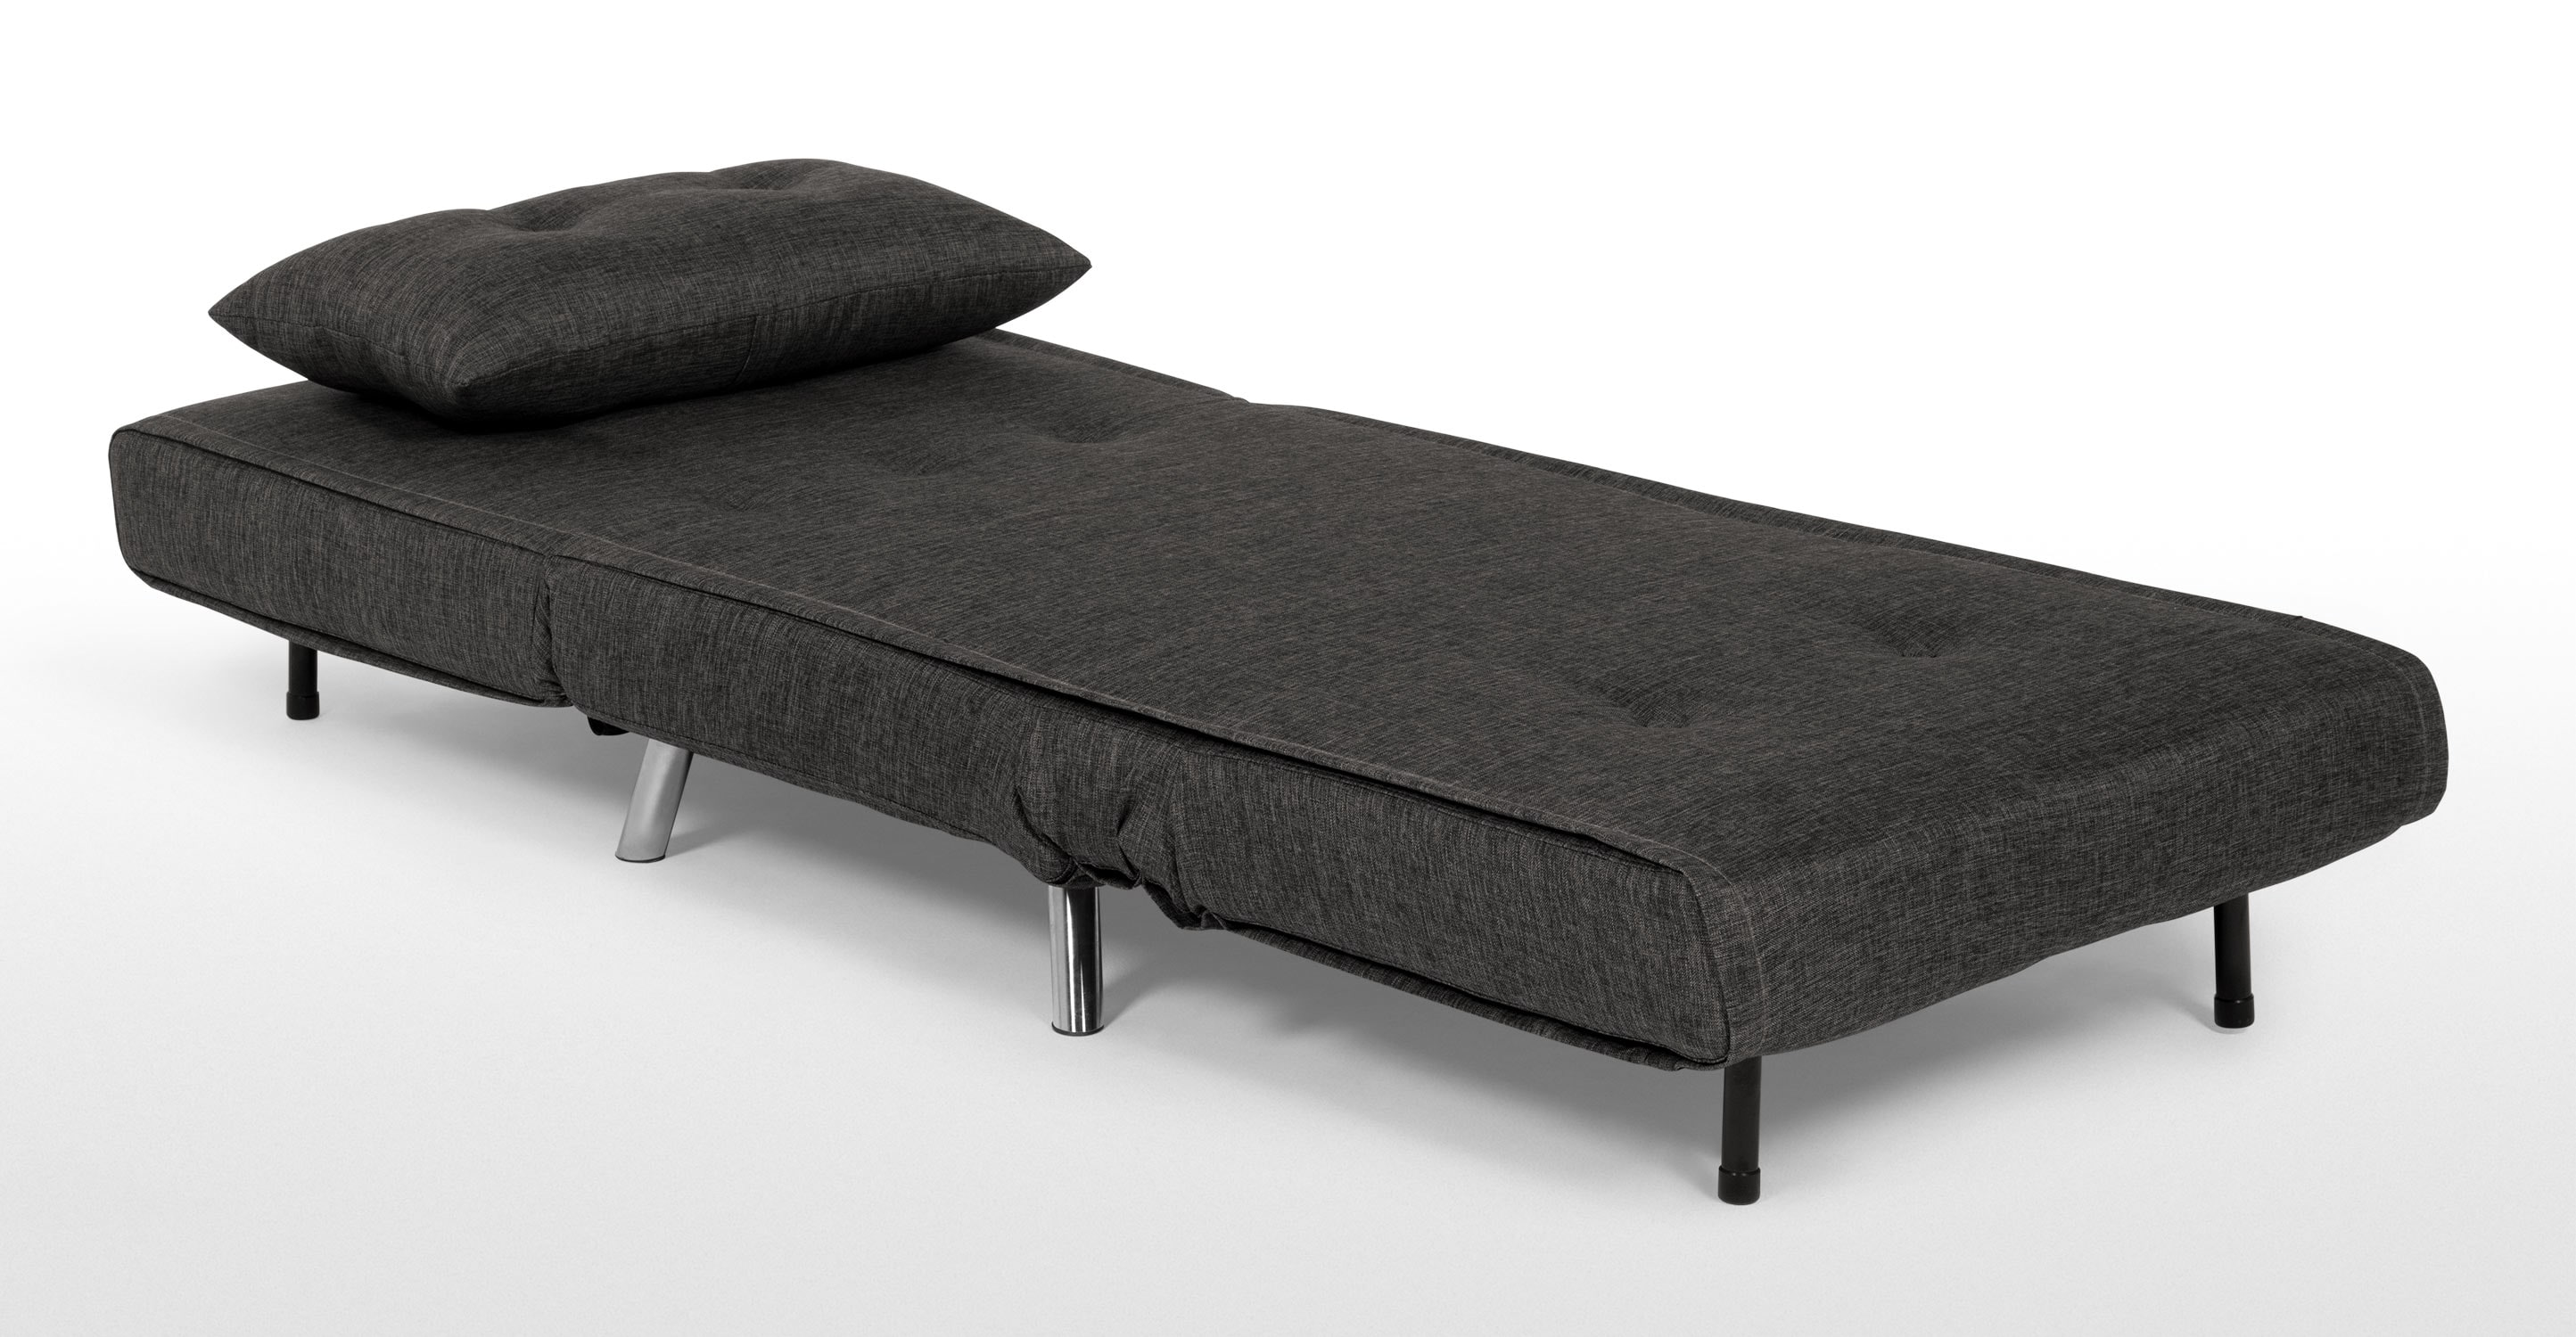 Single futon sofa bed futon single sofa bed - single sofa bed: the general buying guide to APRVXST